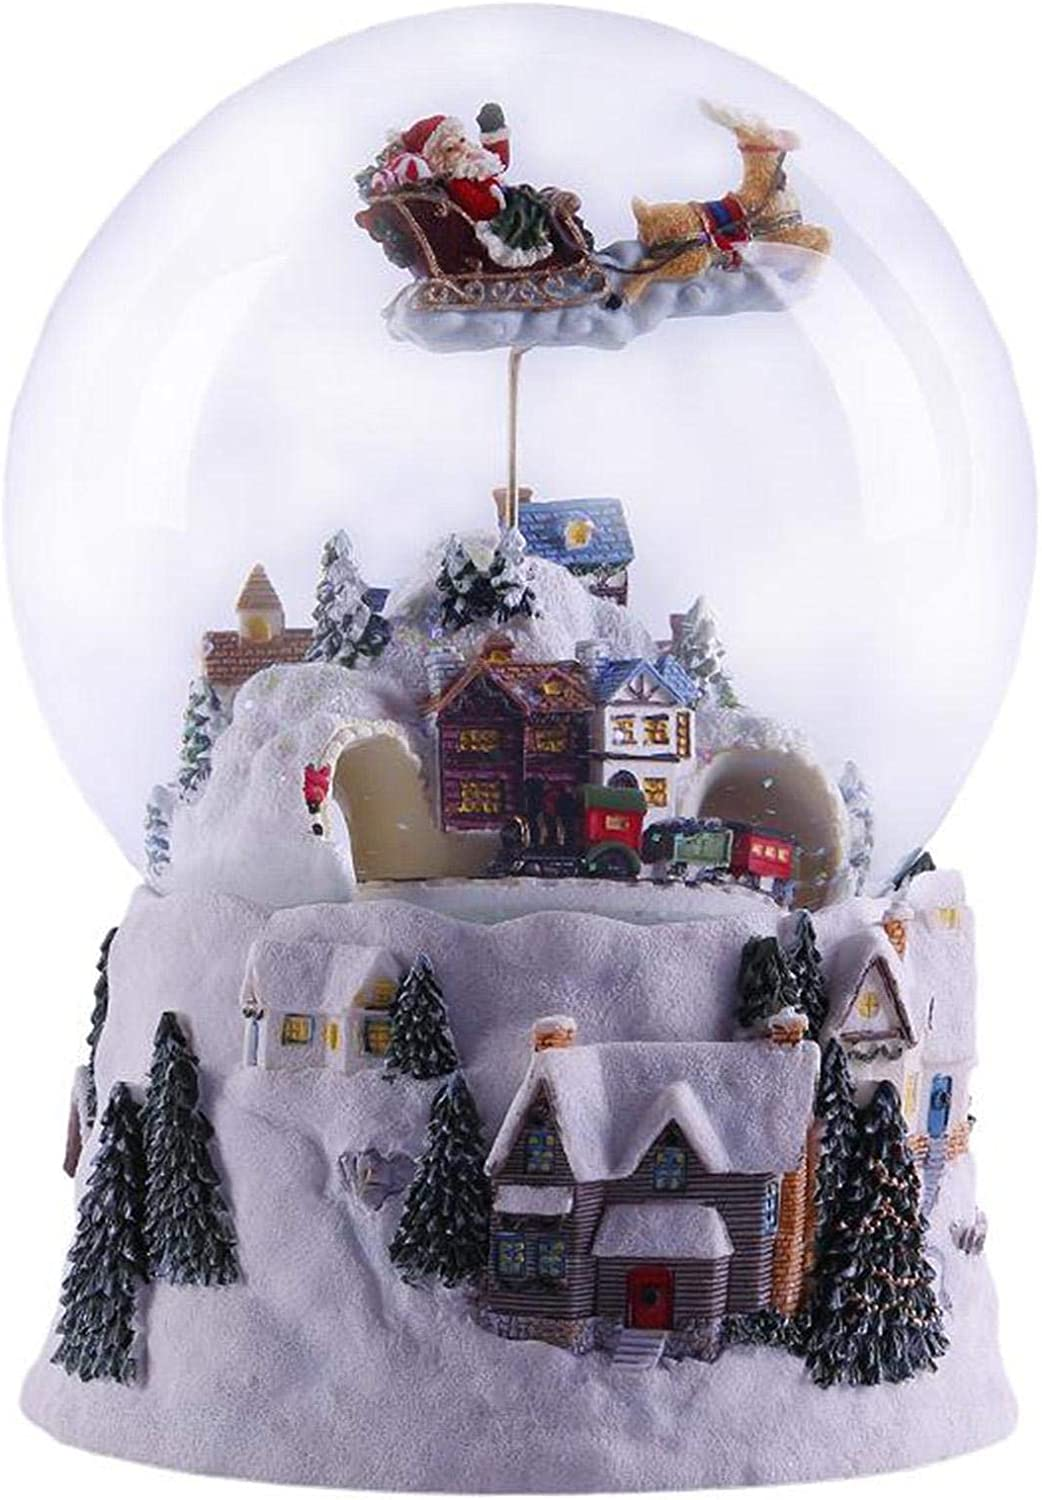 courti Glitterdomes Snow Globe,Musical Rotating Santa Claus with Train Christmas Snow Globe,Santa Flying Over Village Snow Globe Christmas Birthday Gifts for Kids Boys and Girls